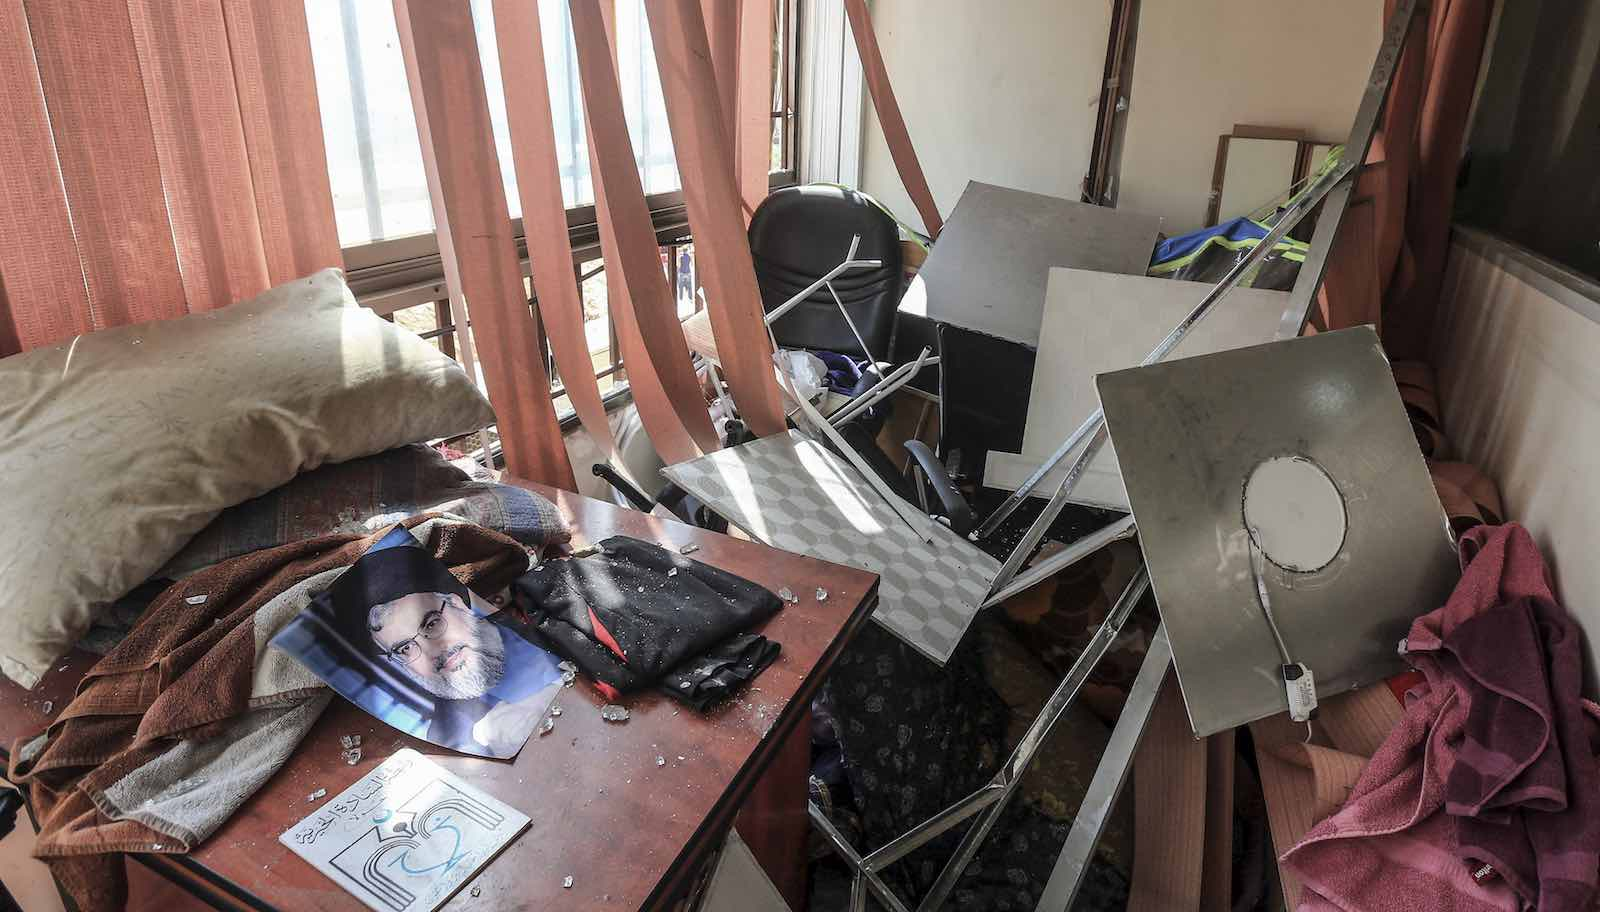 Damage inside a Hezbollah media office in Beirut, after an alleged Israeli drone exploded near the building, 25 August 2019 (Photo: STR/Picture Alliance via Getty Images)